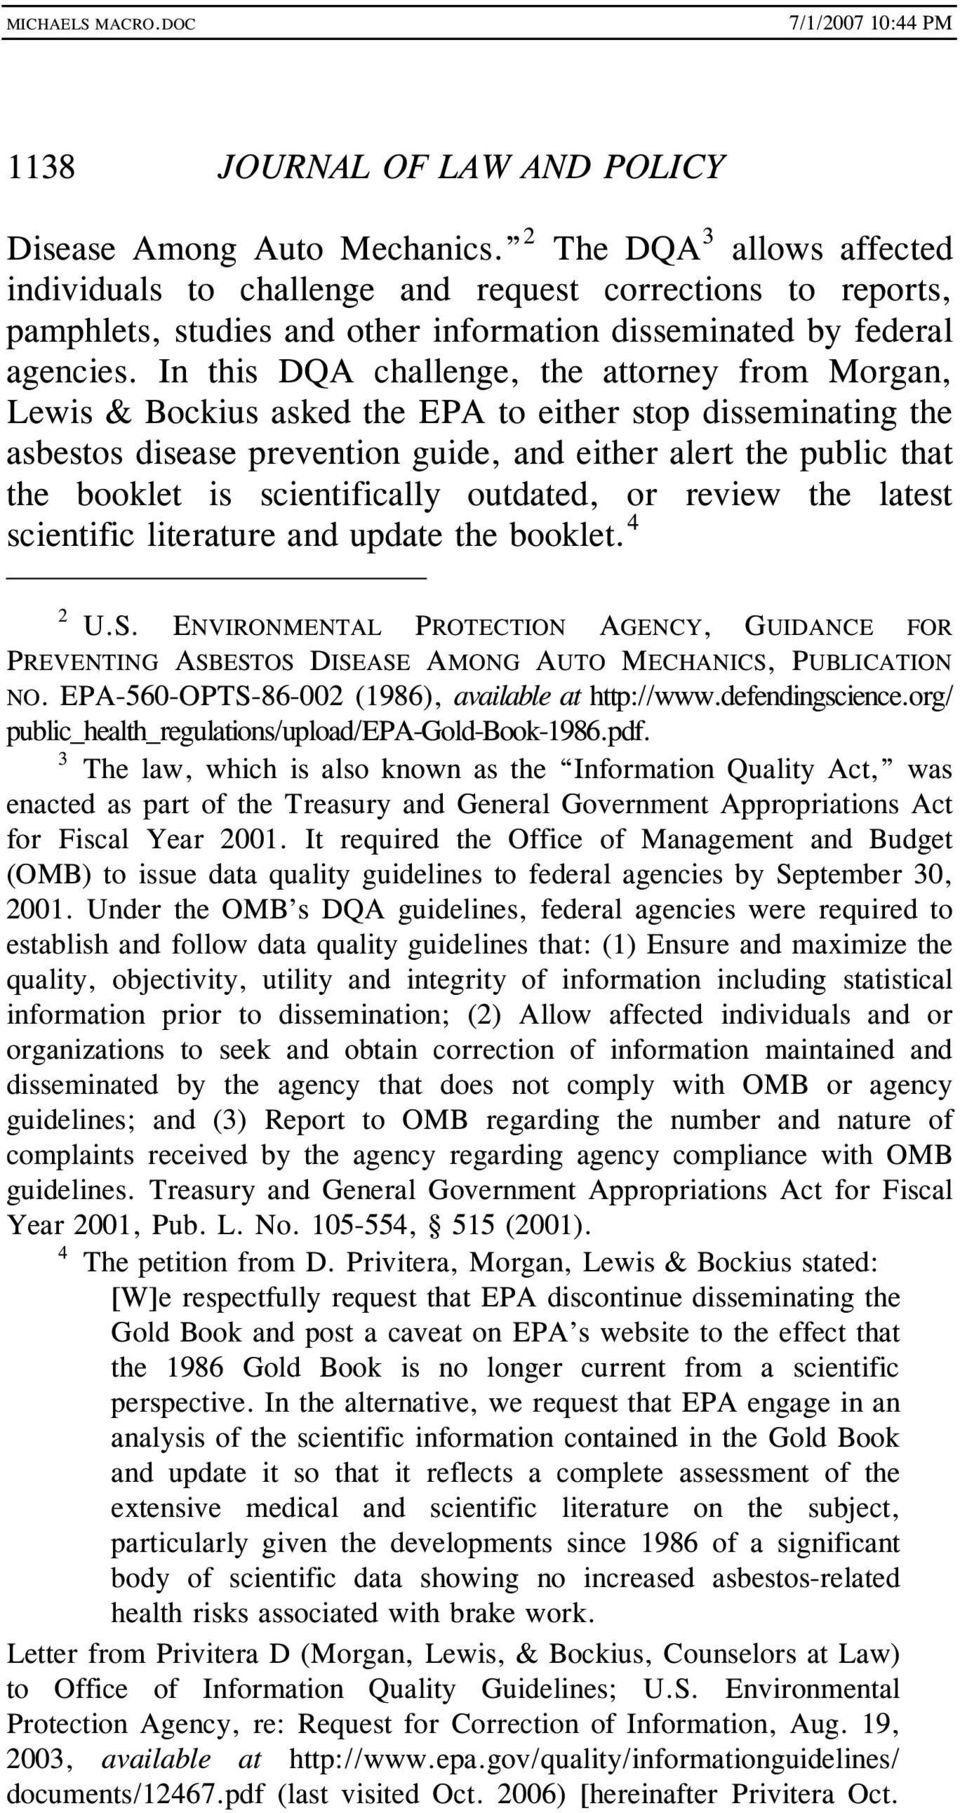 In this DQA challenge, the attorney from Morgan, Lewis & Bockius asked the EPA to either stop disseminating the asbestos disease prevention guide, and either alert the public that the booklet is